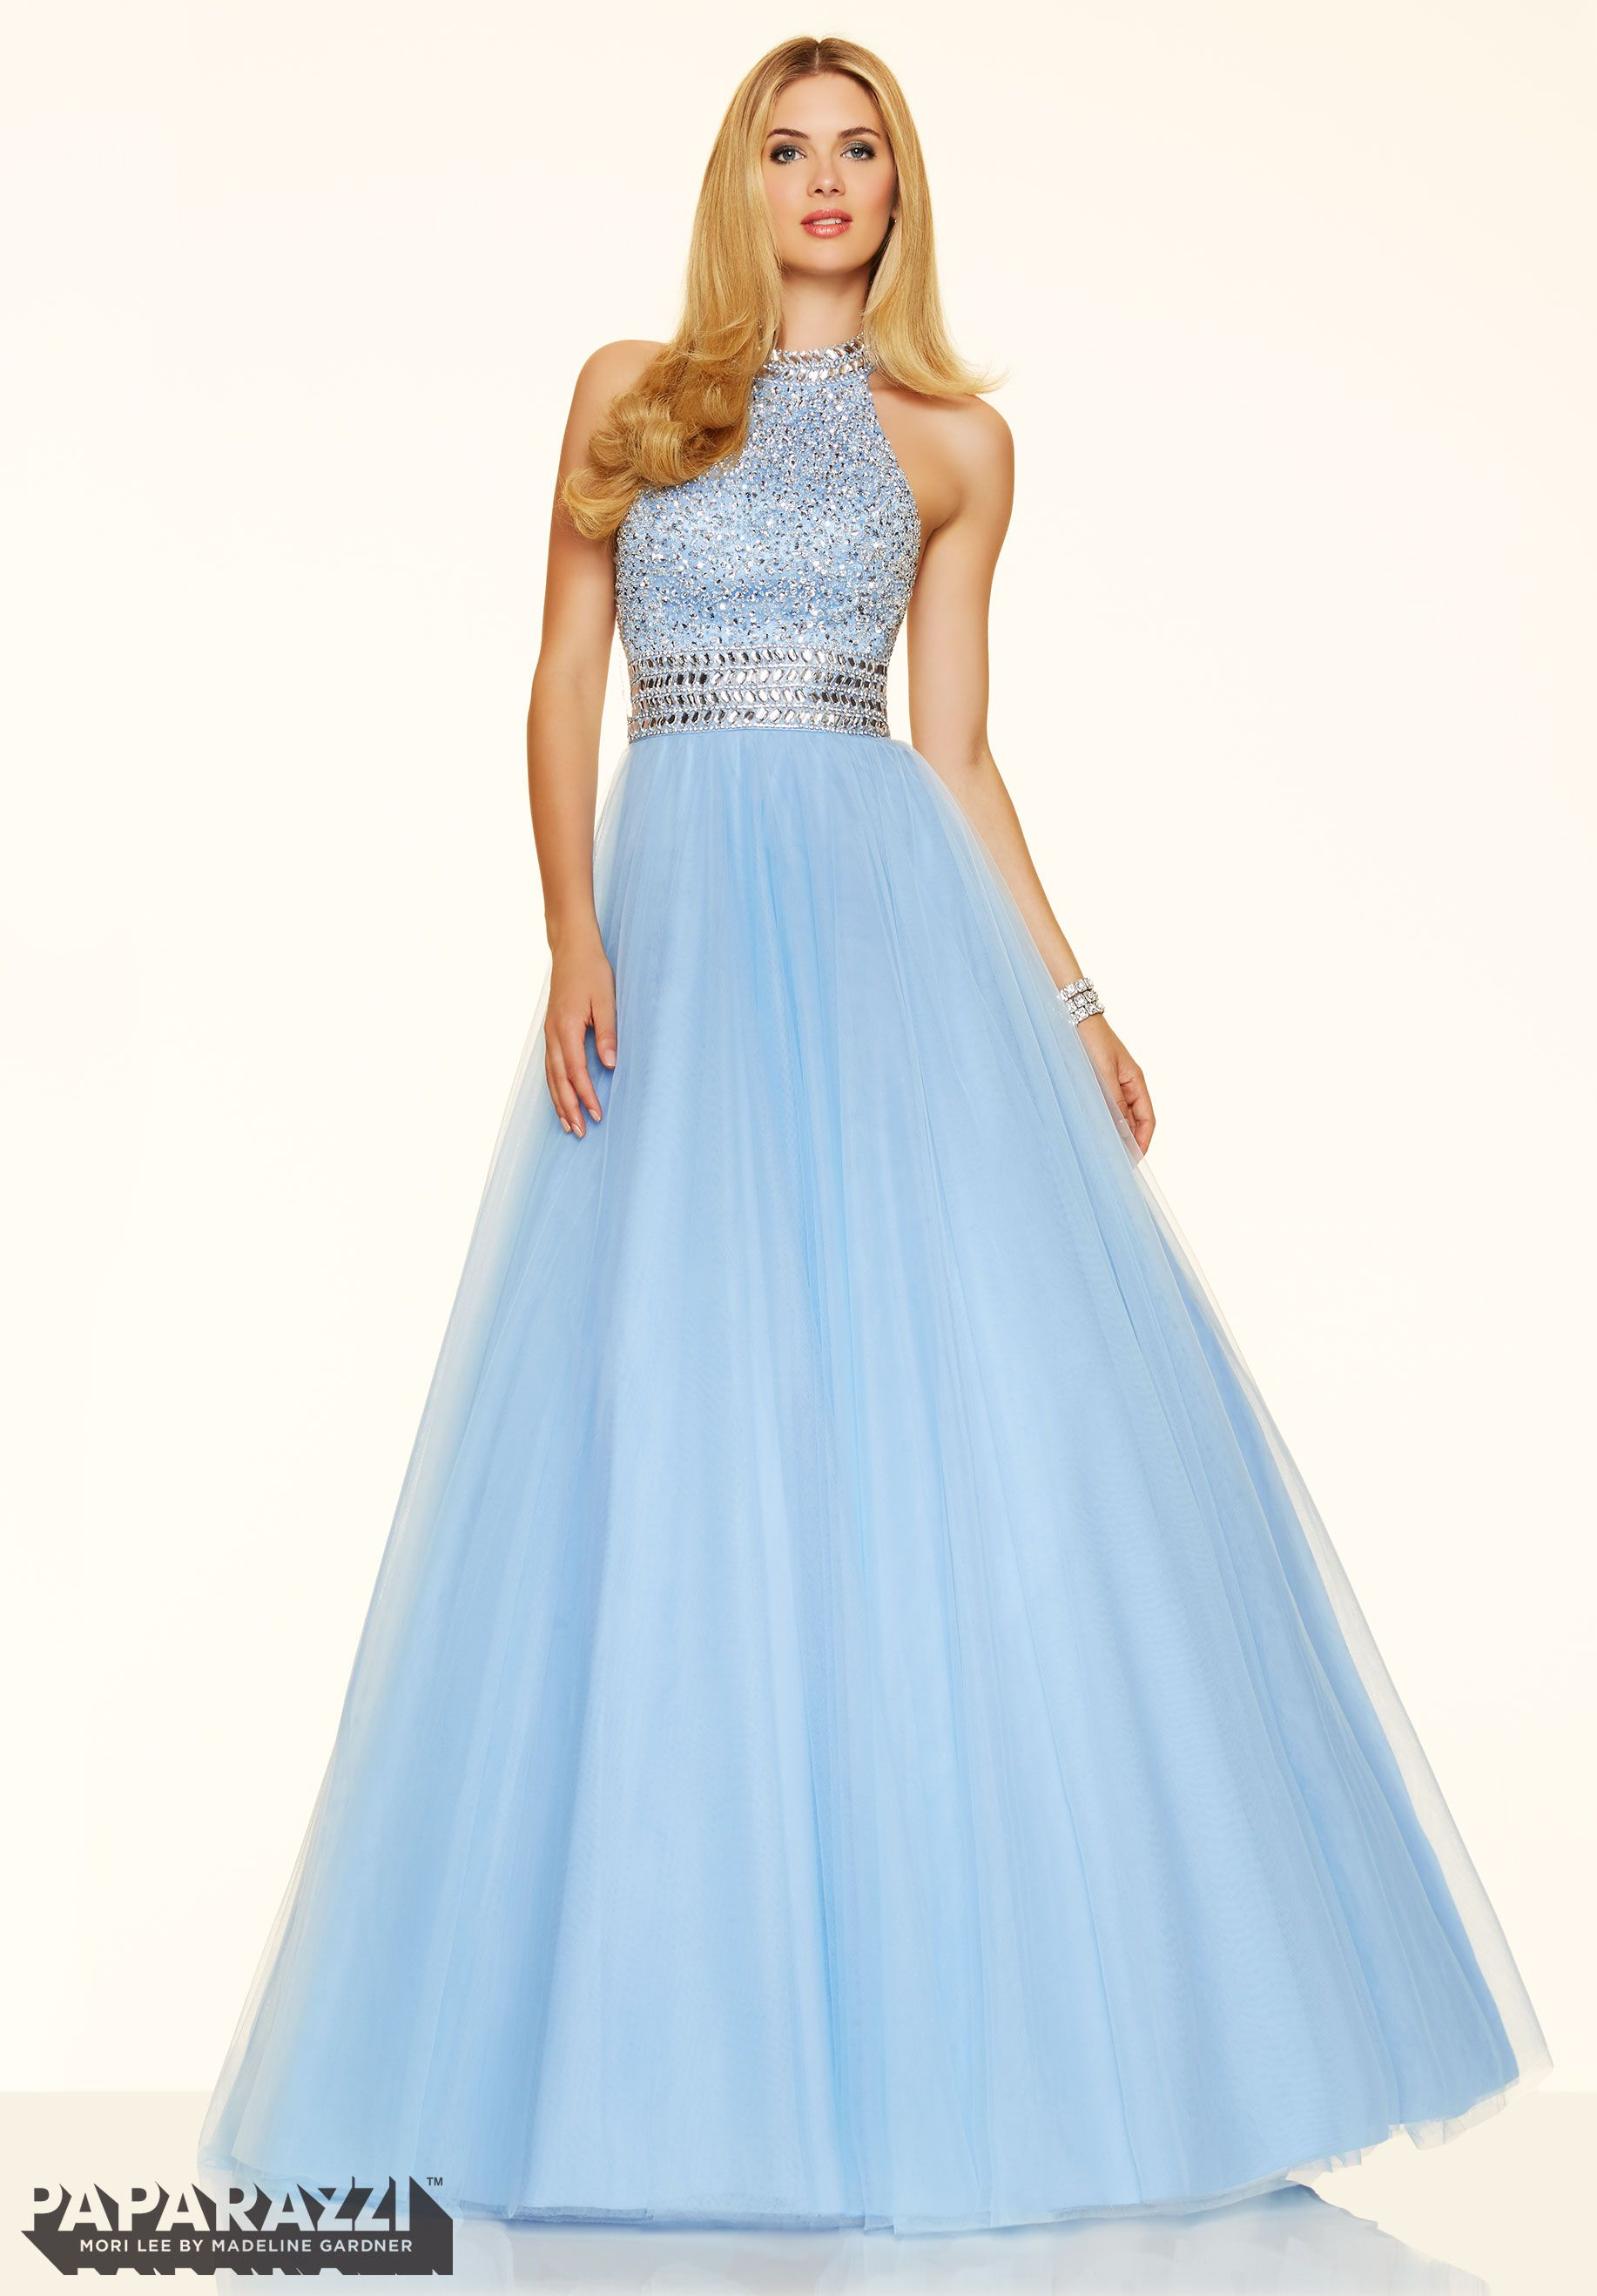 Beaded soft tulle ball gown prom dress available at hopeus bridal